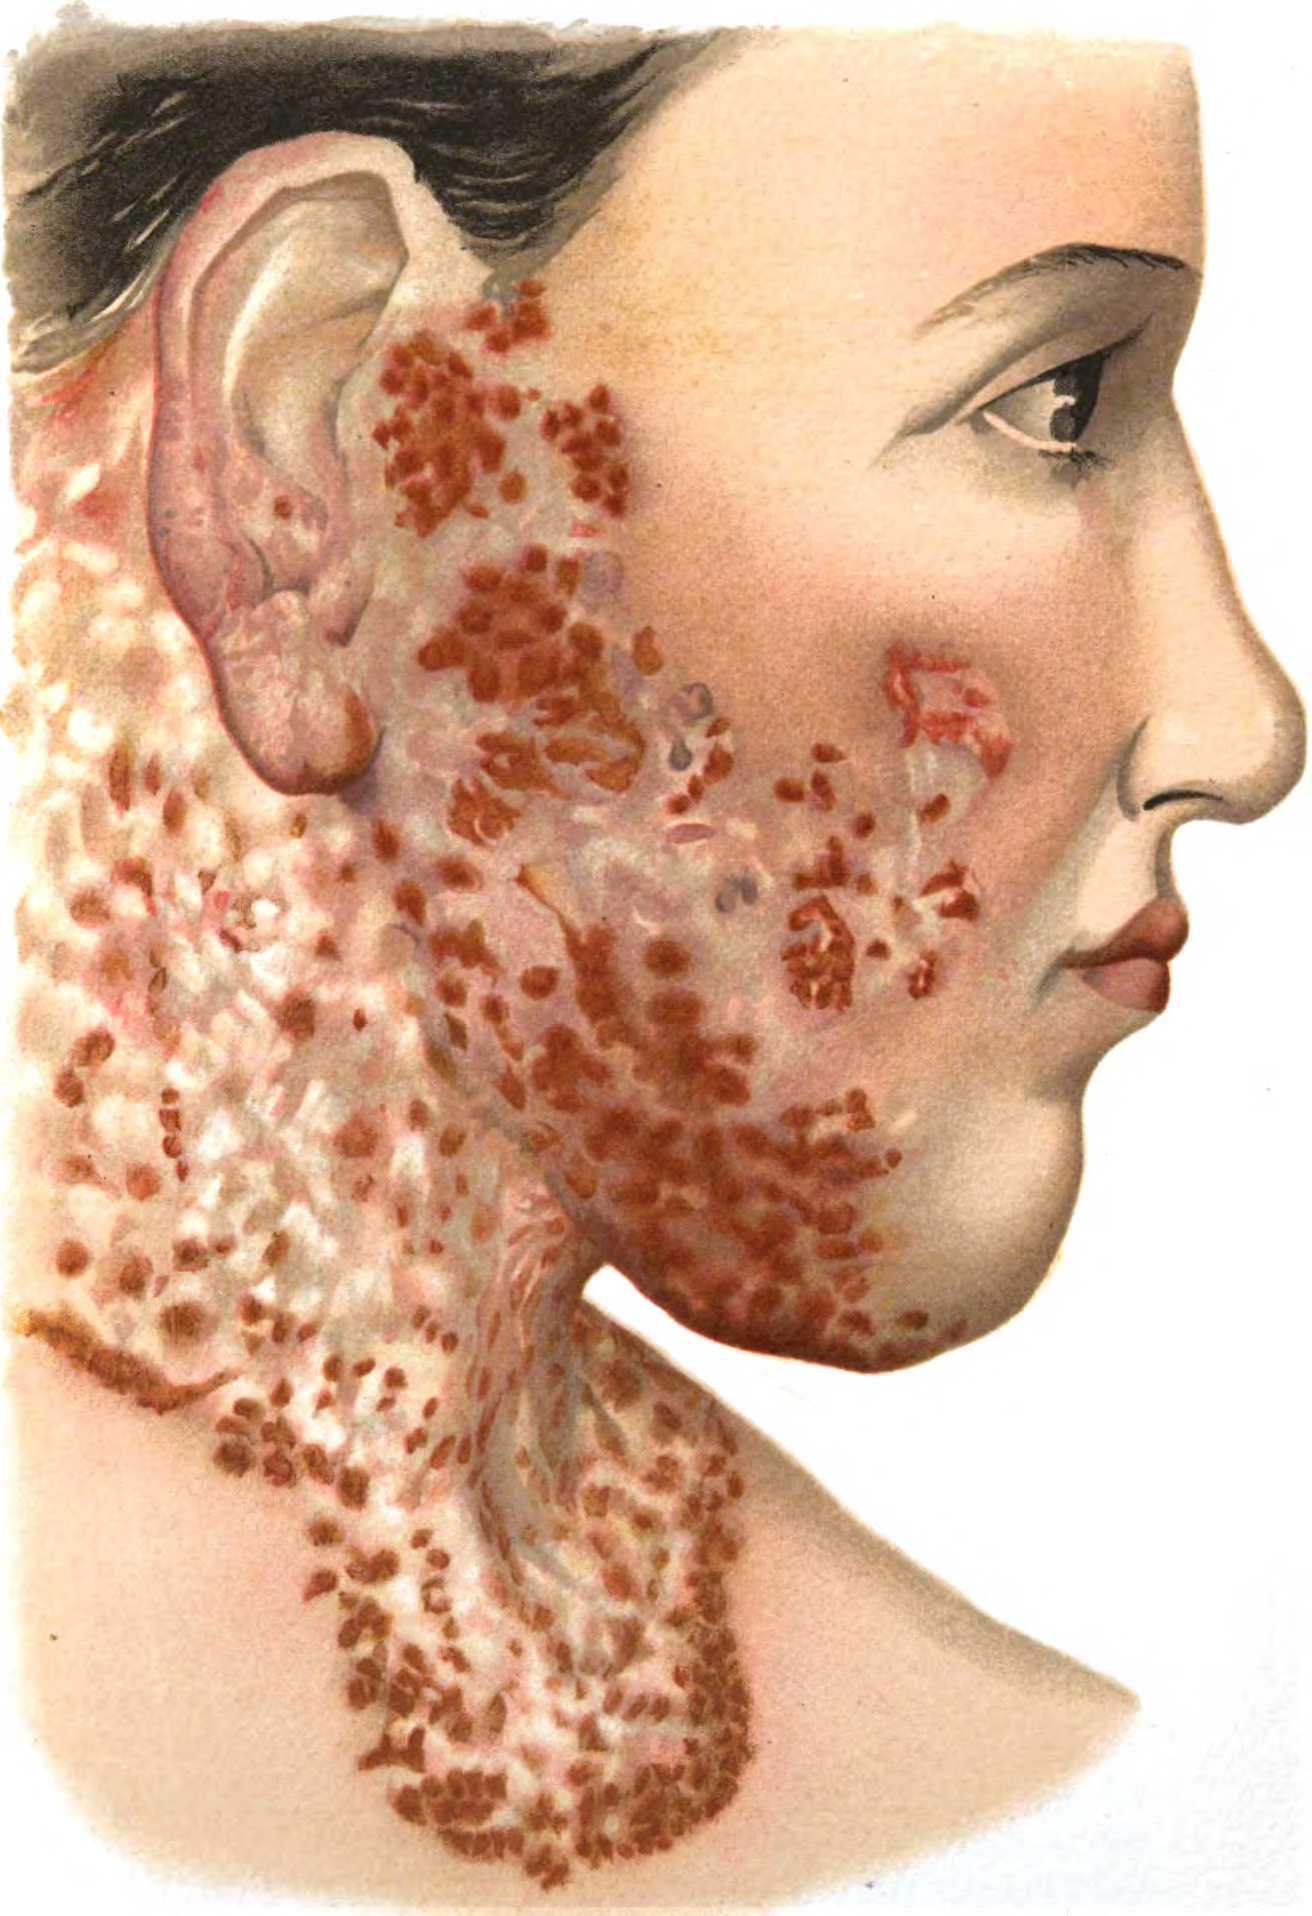 Cutaneous tuberculosis | Article about cutaneous ...